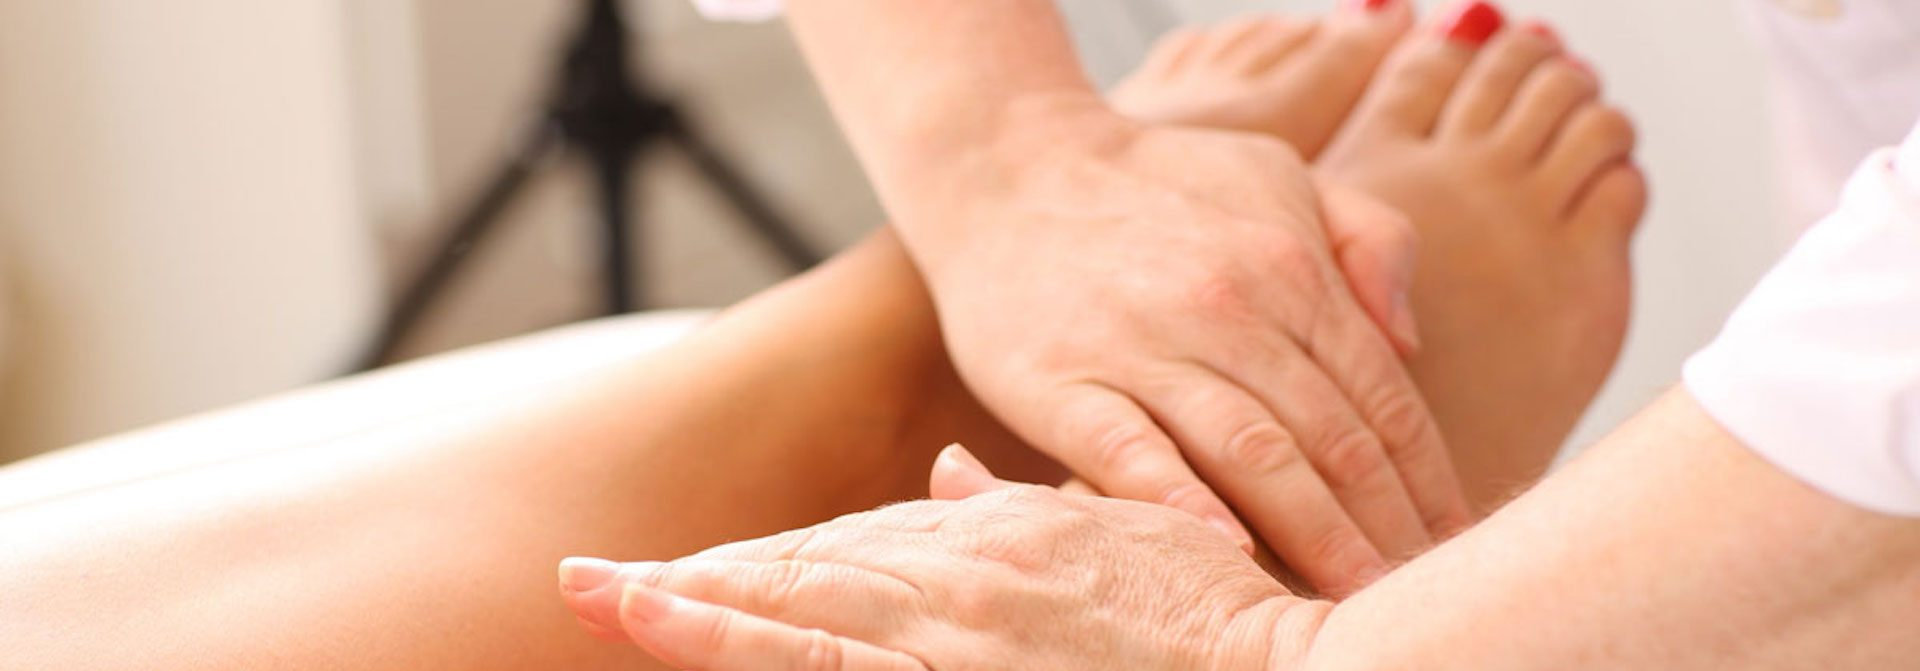 Medical Lymphatic Drainage Treatments in Hertfordshire